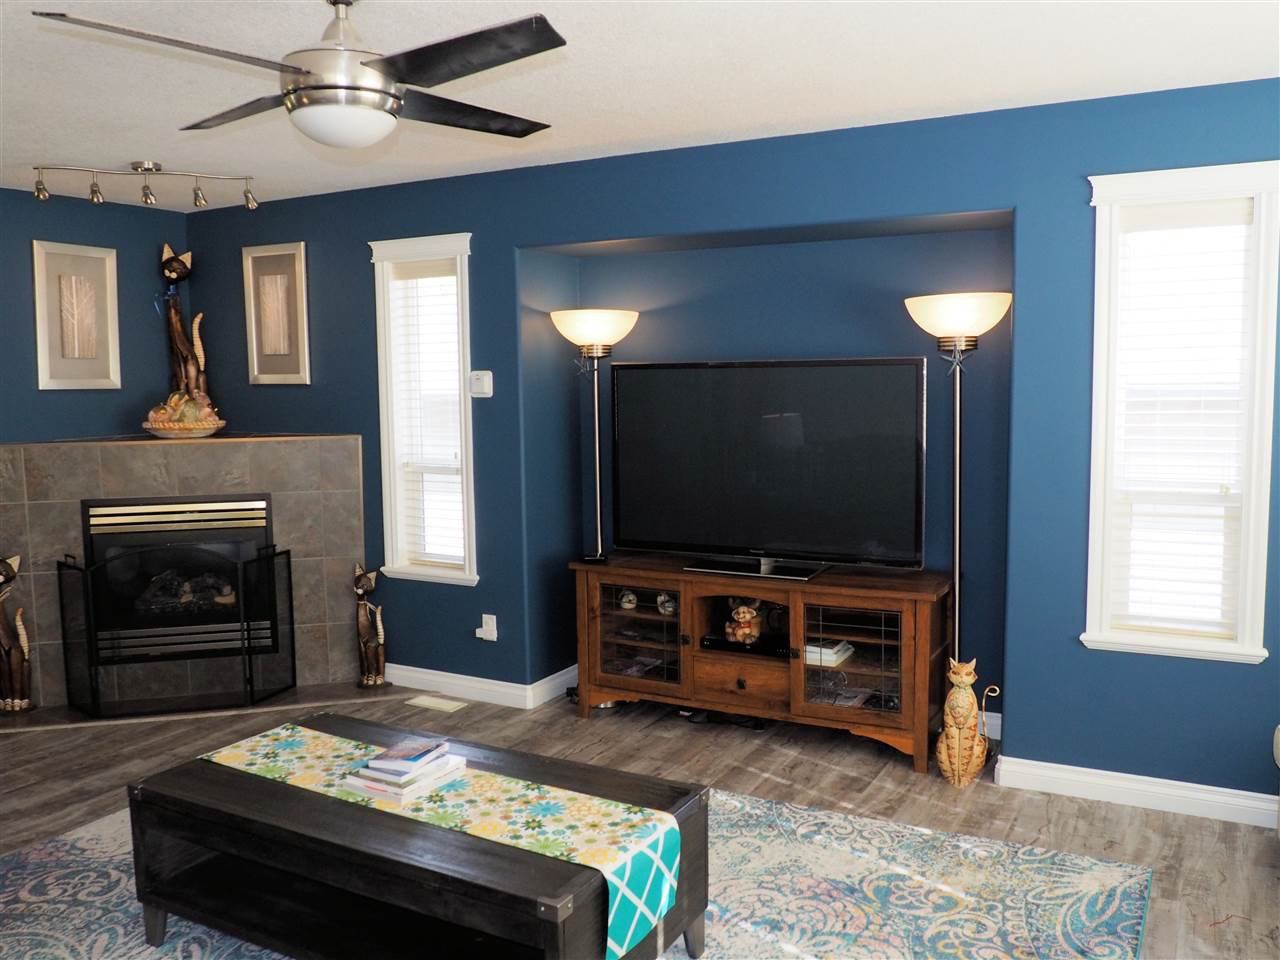 Photo 11: Photos: 7627 GRAYSHELL Road in Prince George: St. Lawrence Heights House for sale (PG City South (Zone 74))  : MLS®# R2438648